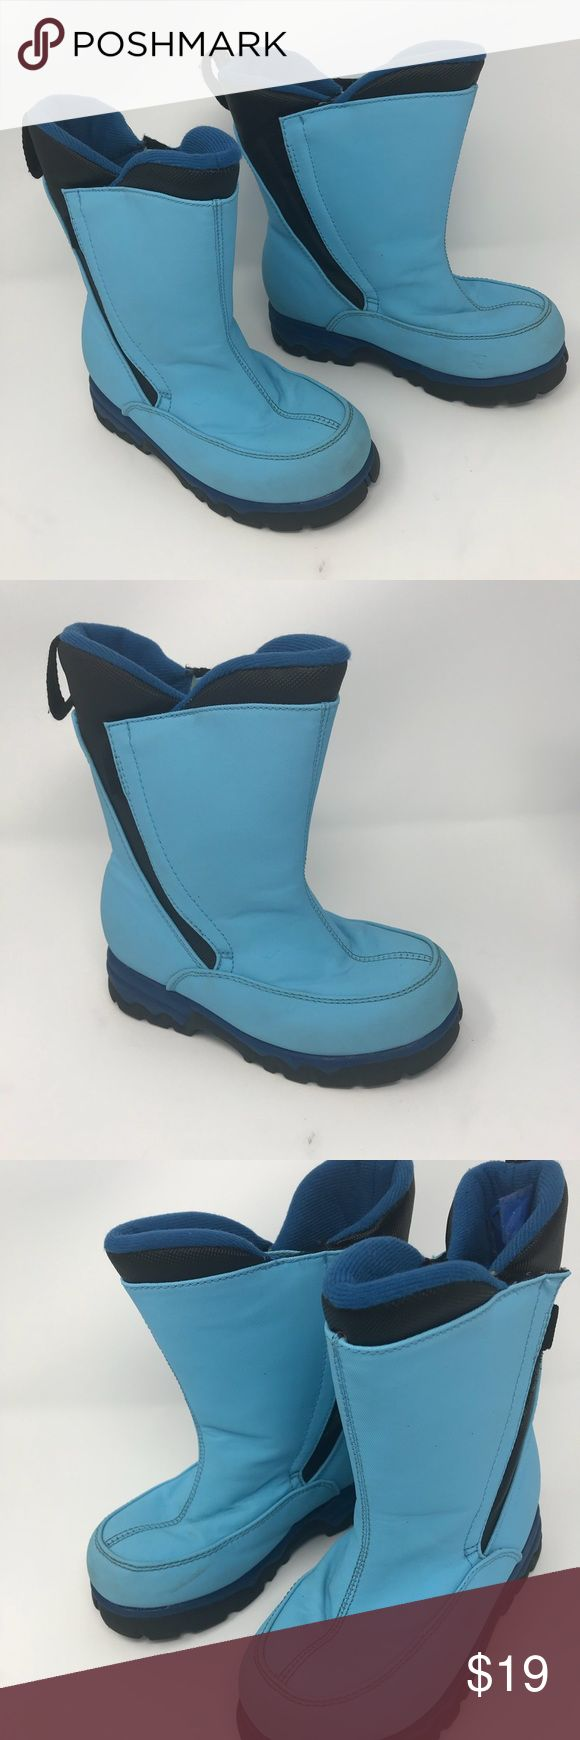 LANDS' ENDS Winter Snow Boots Blue Kids size 12M Lands' End Snow Winter Boots Insulated boots Light blue Kids size 12M This is a used item. Has some discoloration from wear but in good condition. Lands' End Shoes Rain & Snow Boots